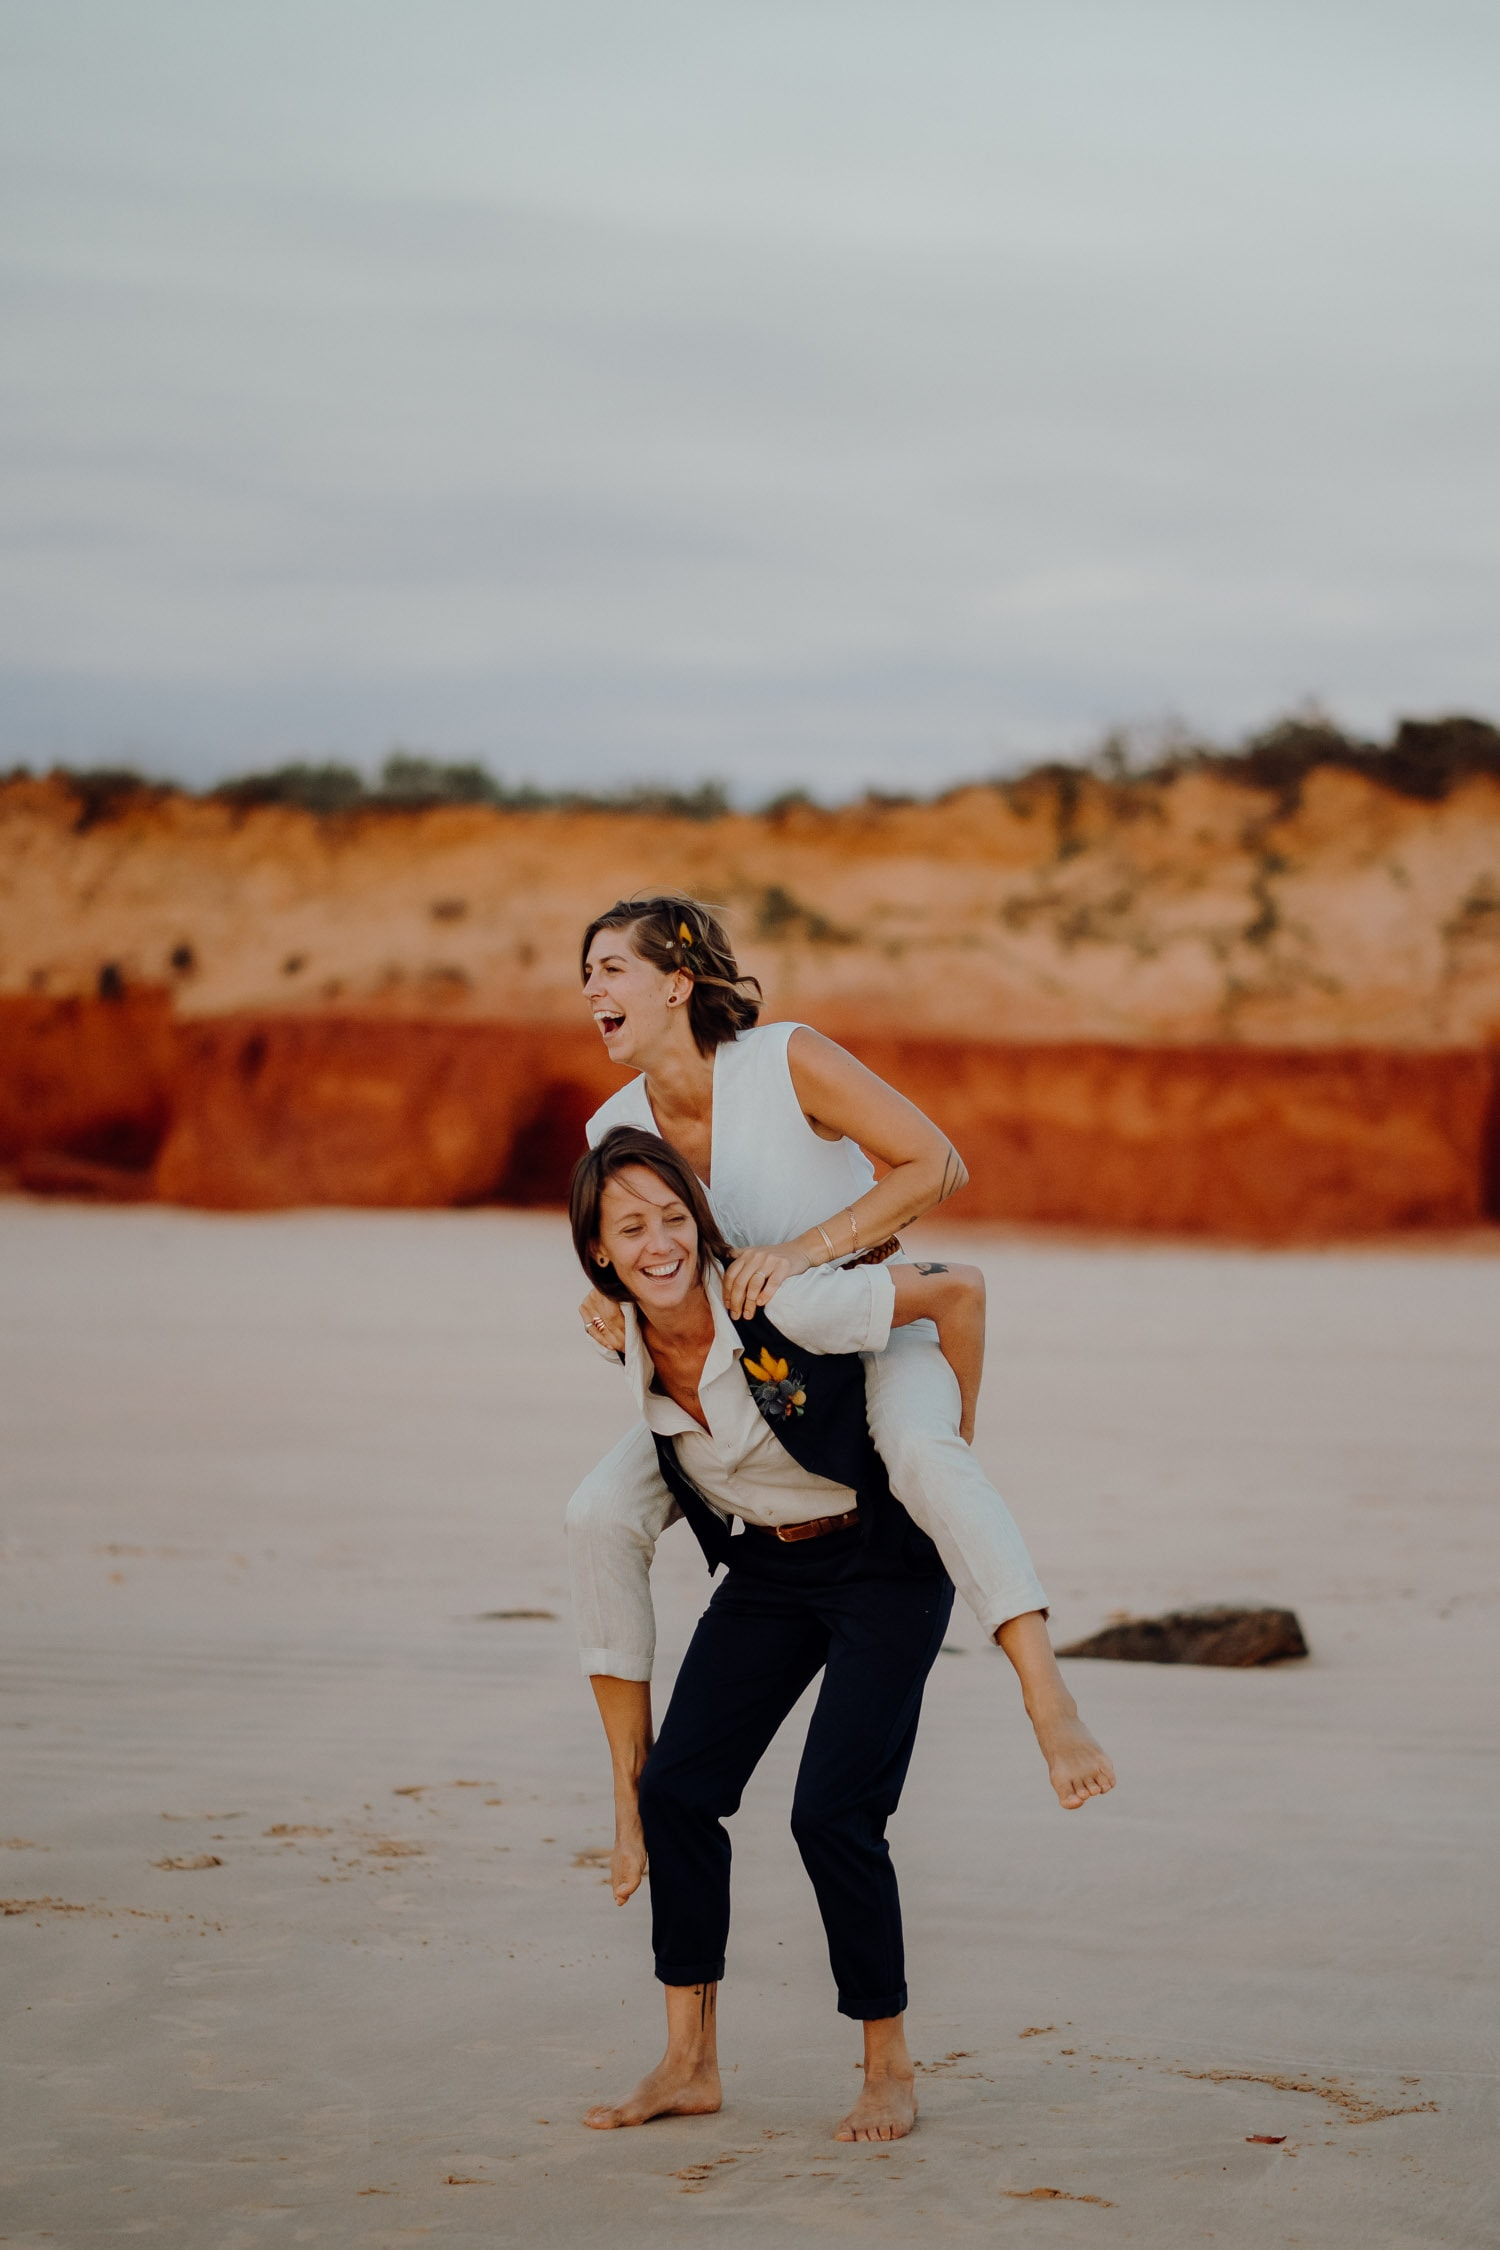 women piggybacks another woman at Broome elopement wedding